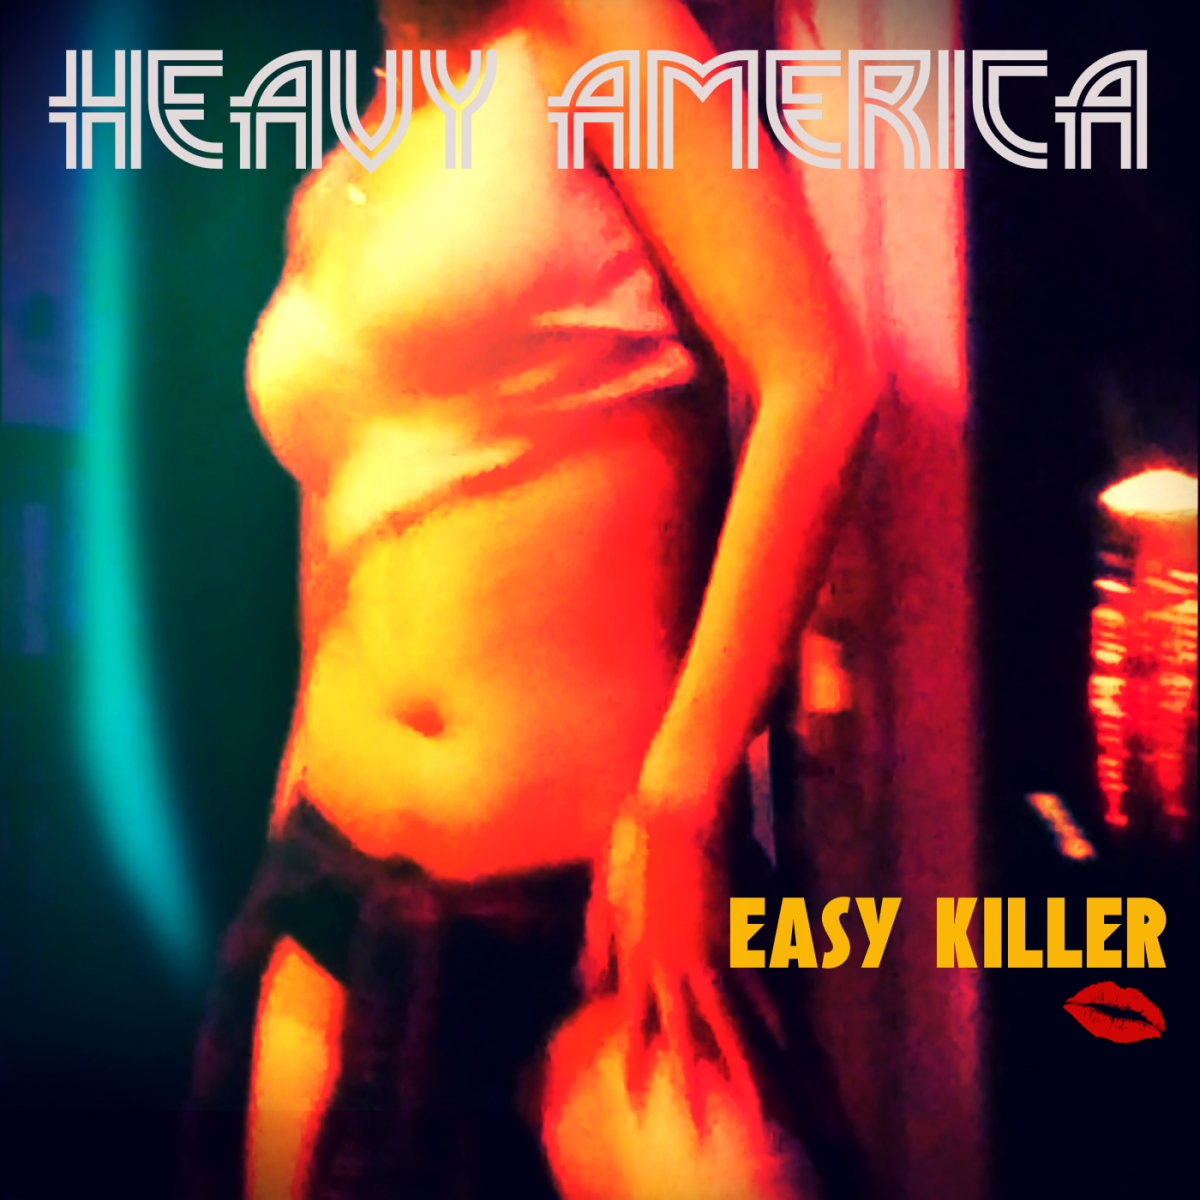 Easy Killer  - Heavy AmericA (reviewed by Dave Franklin)